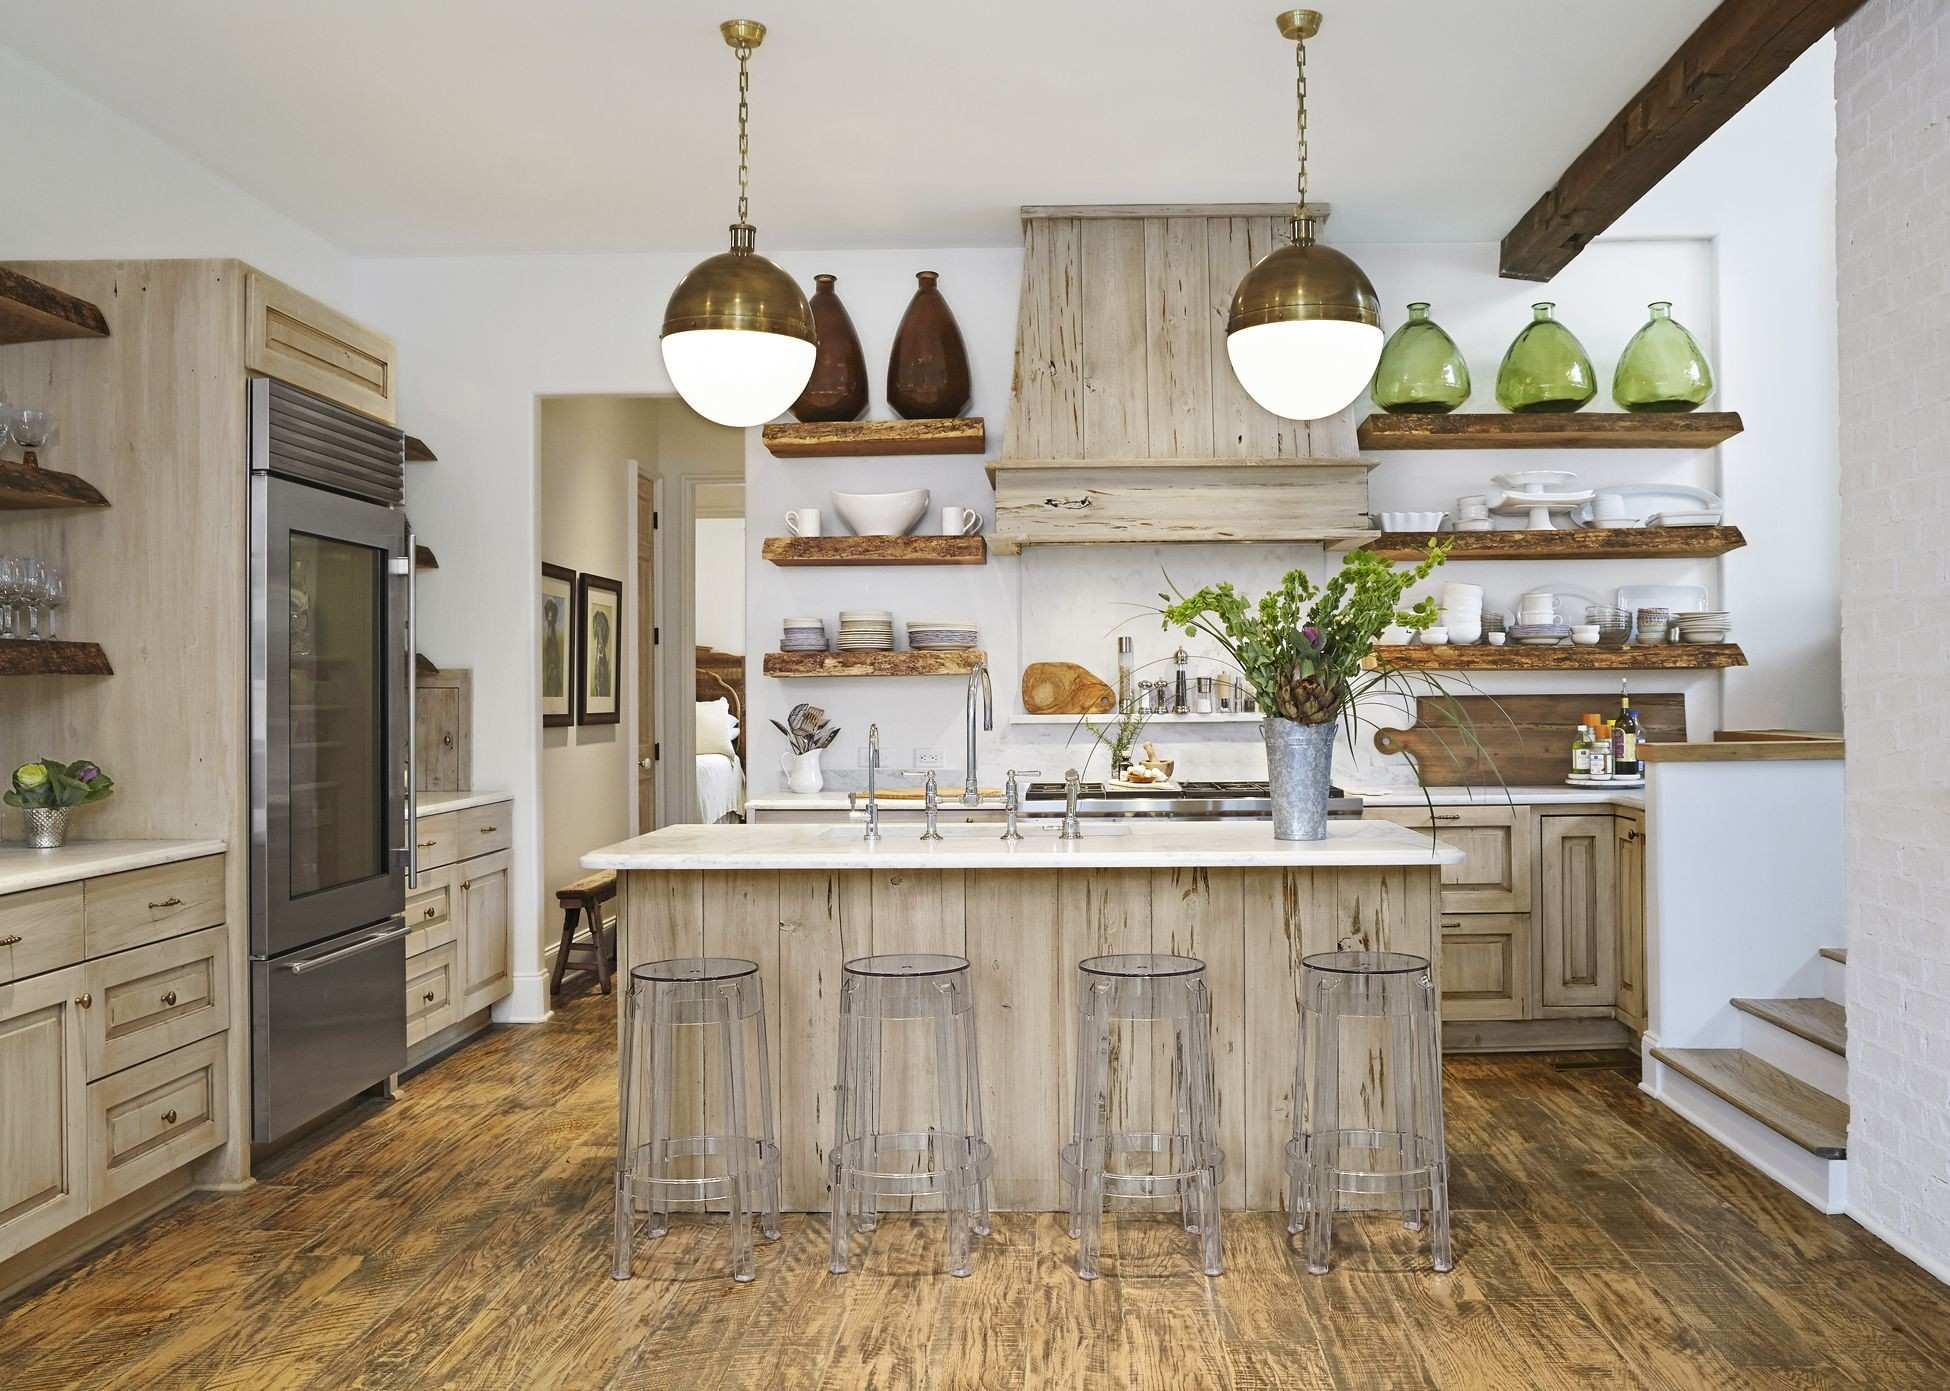 hardwood flooring trends for 2018 of kitchen appliance color trends new 8 gorgeous kitchen trends that with regard to 8 gorgeous kitchen trends that will be huge in 2018